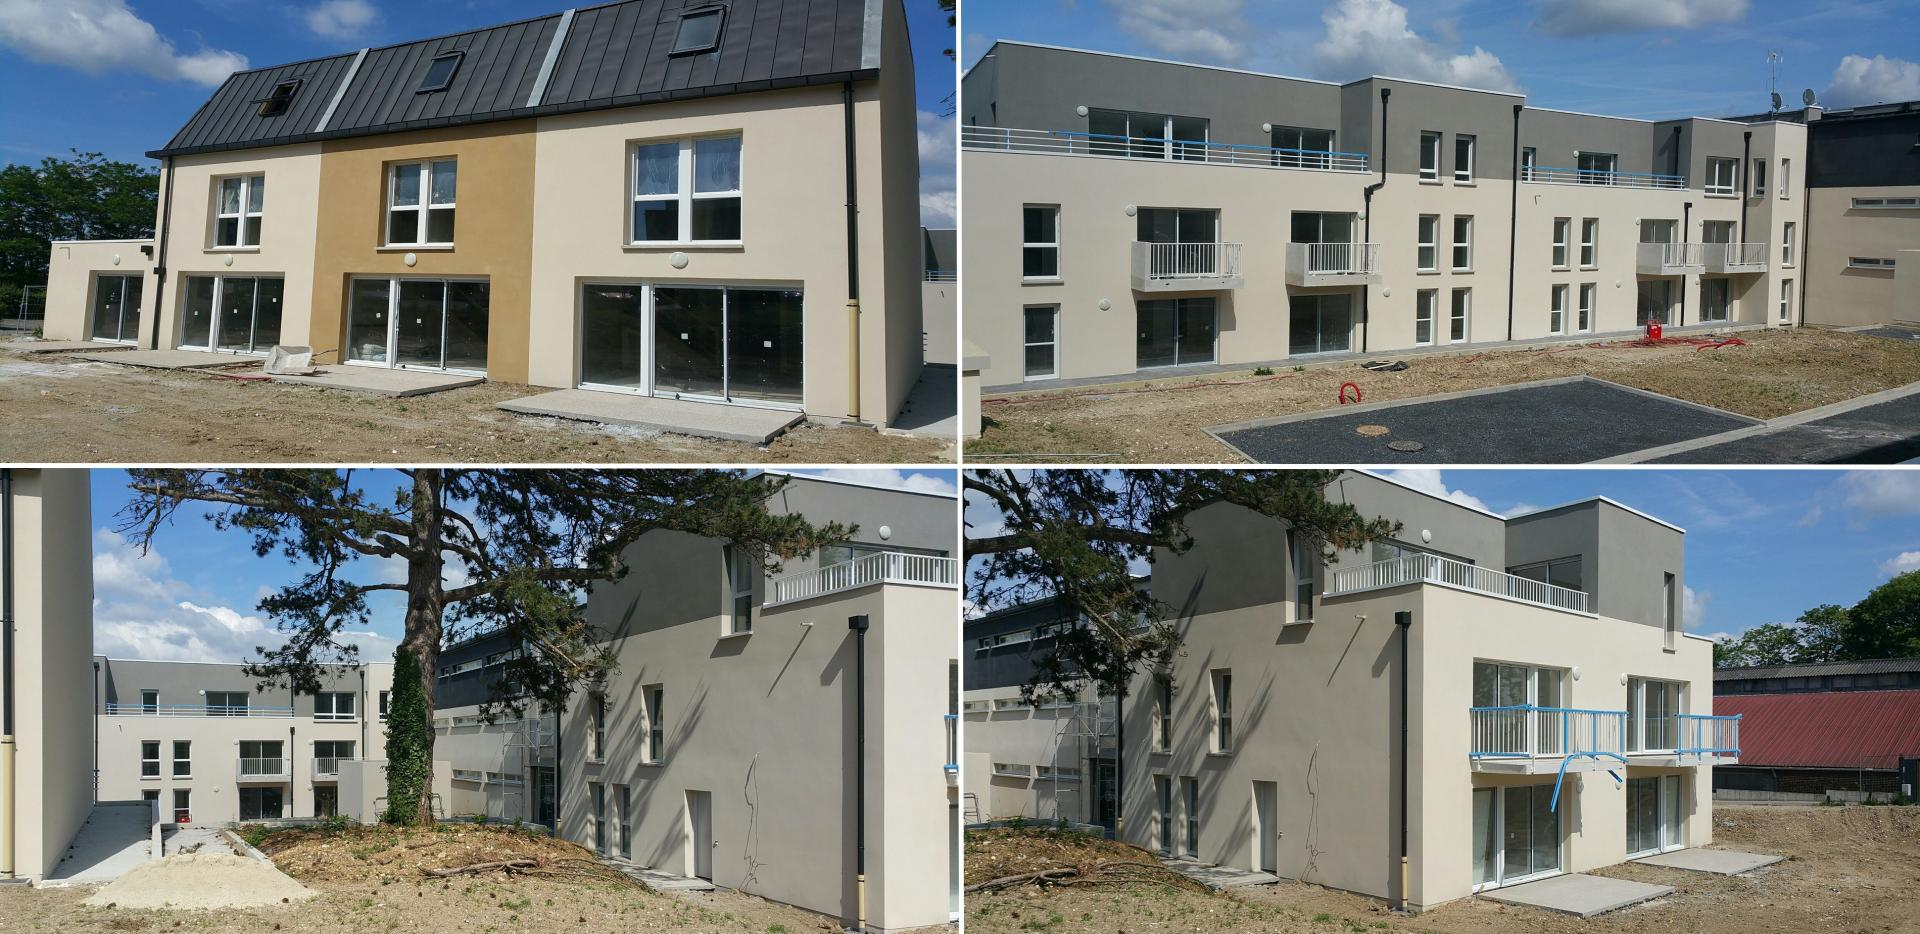 VINCI IMMOBILIER - Construction de 40 logements